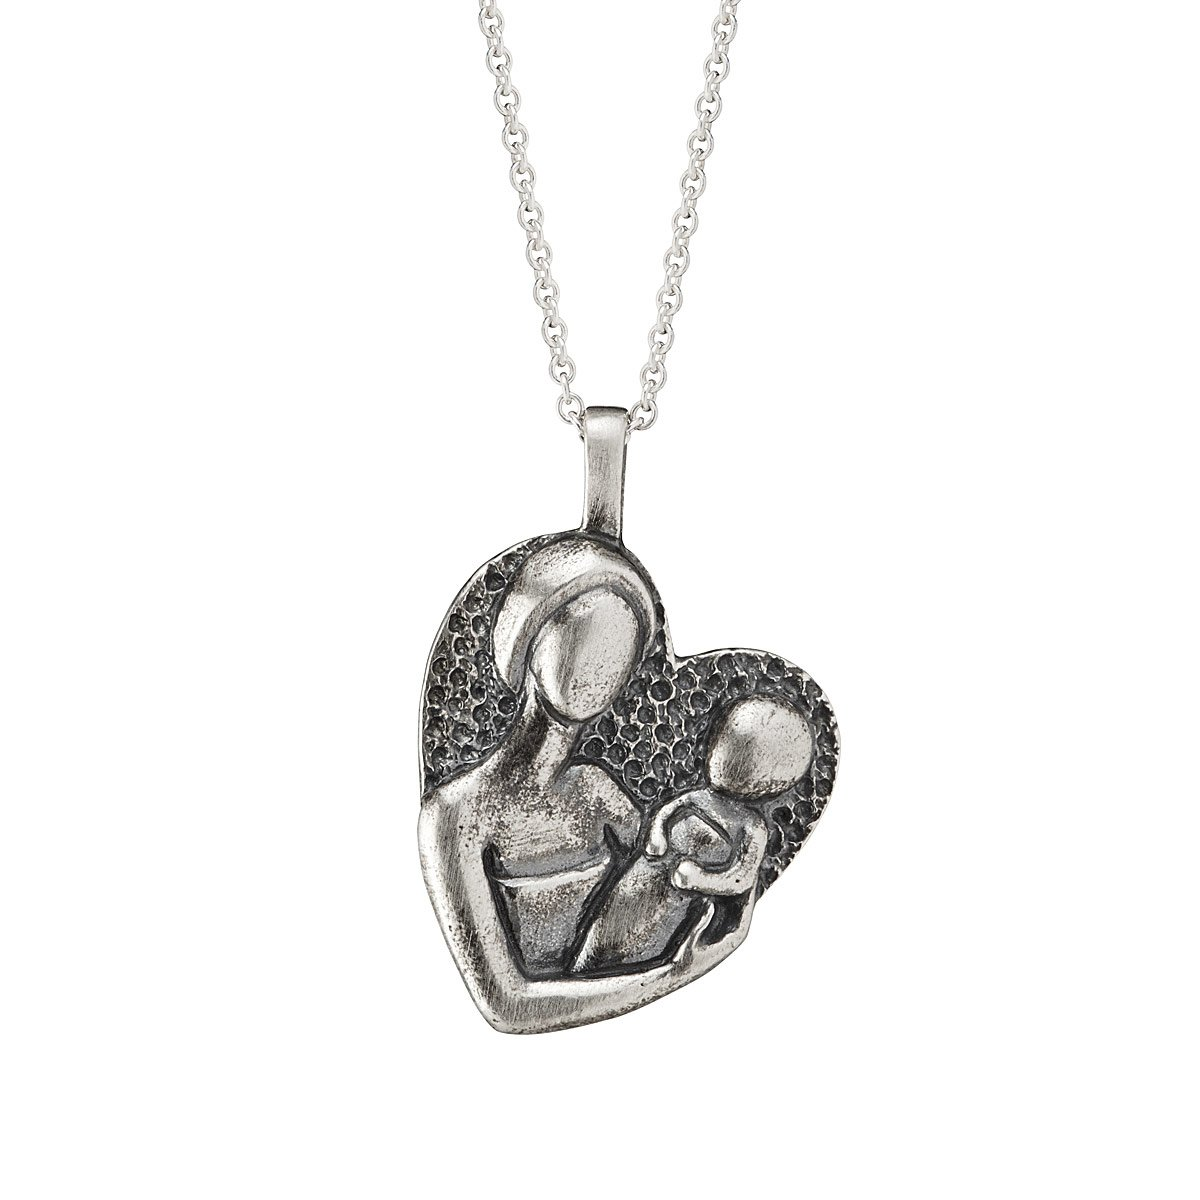 earth childrensalon heart the mother silver pendant necklace sterling tales from yrs child